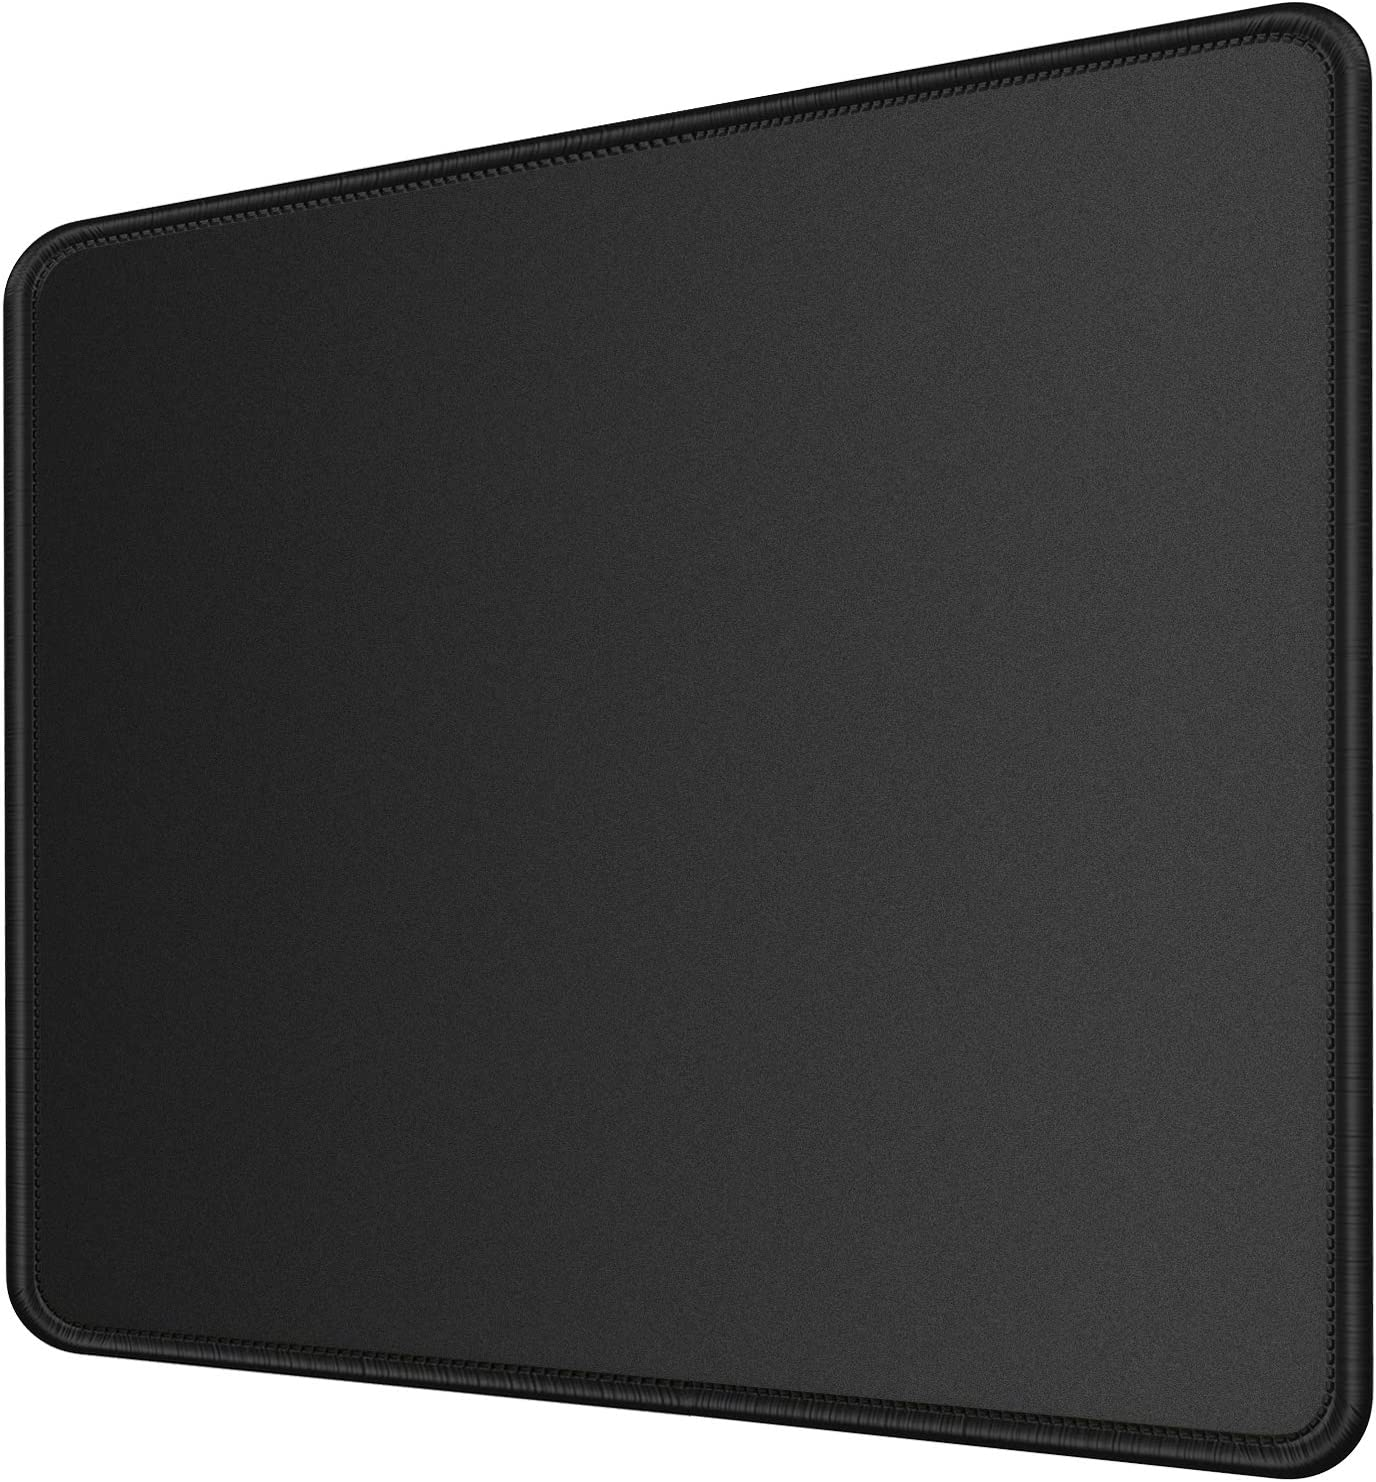 MROCO Computer Mouse Pad with Non-Slip Rubber Base, Premium-Textured and Waterproof Mousepad with Stitched Edges, Mouse Pads for Computers, Laptop, Gaming, Office & Home, 11 x 8.5 inches, 3mm, Black